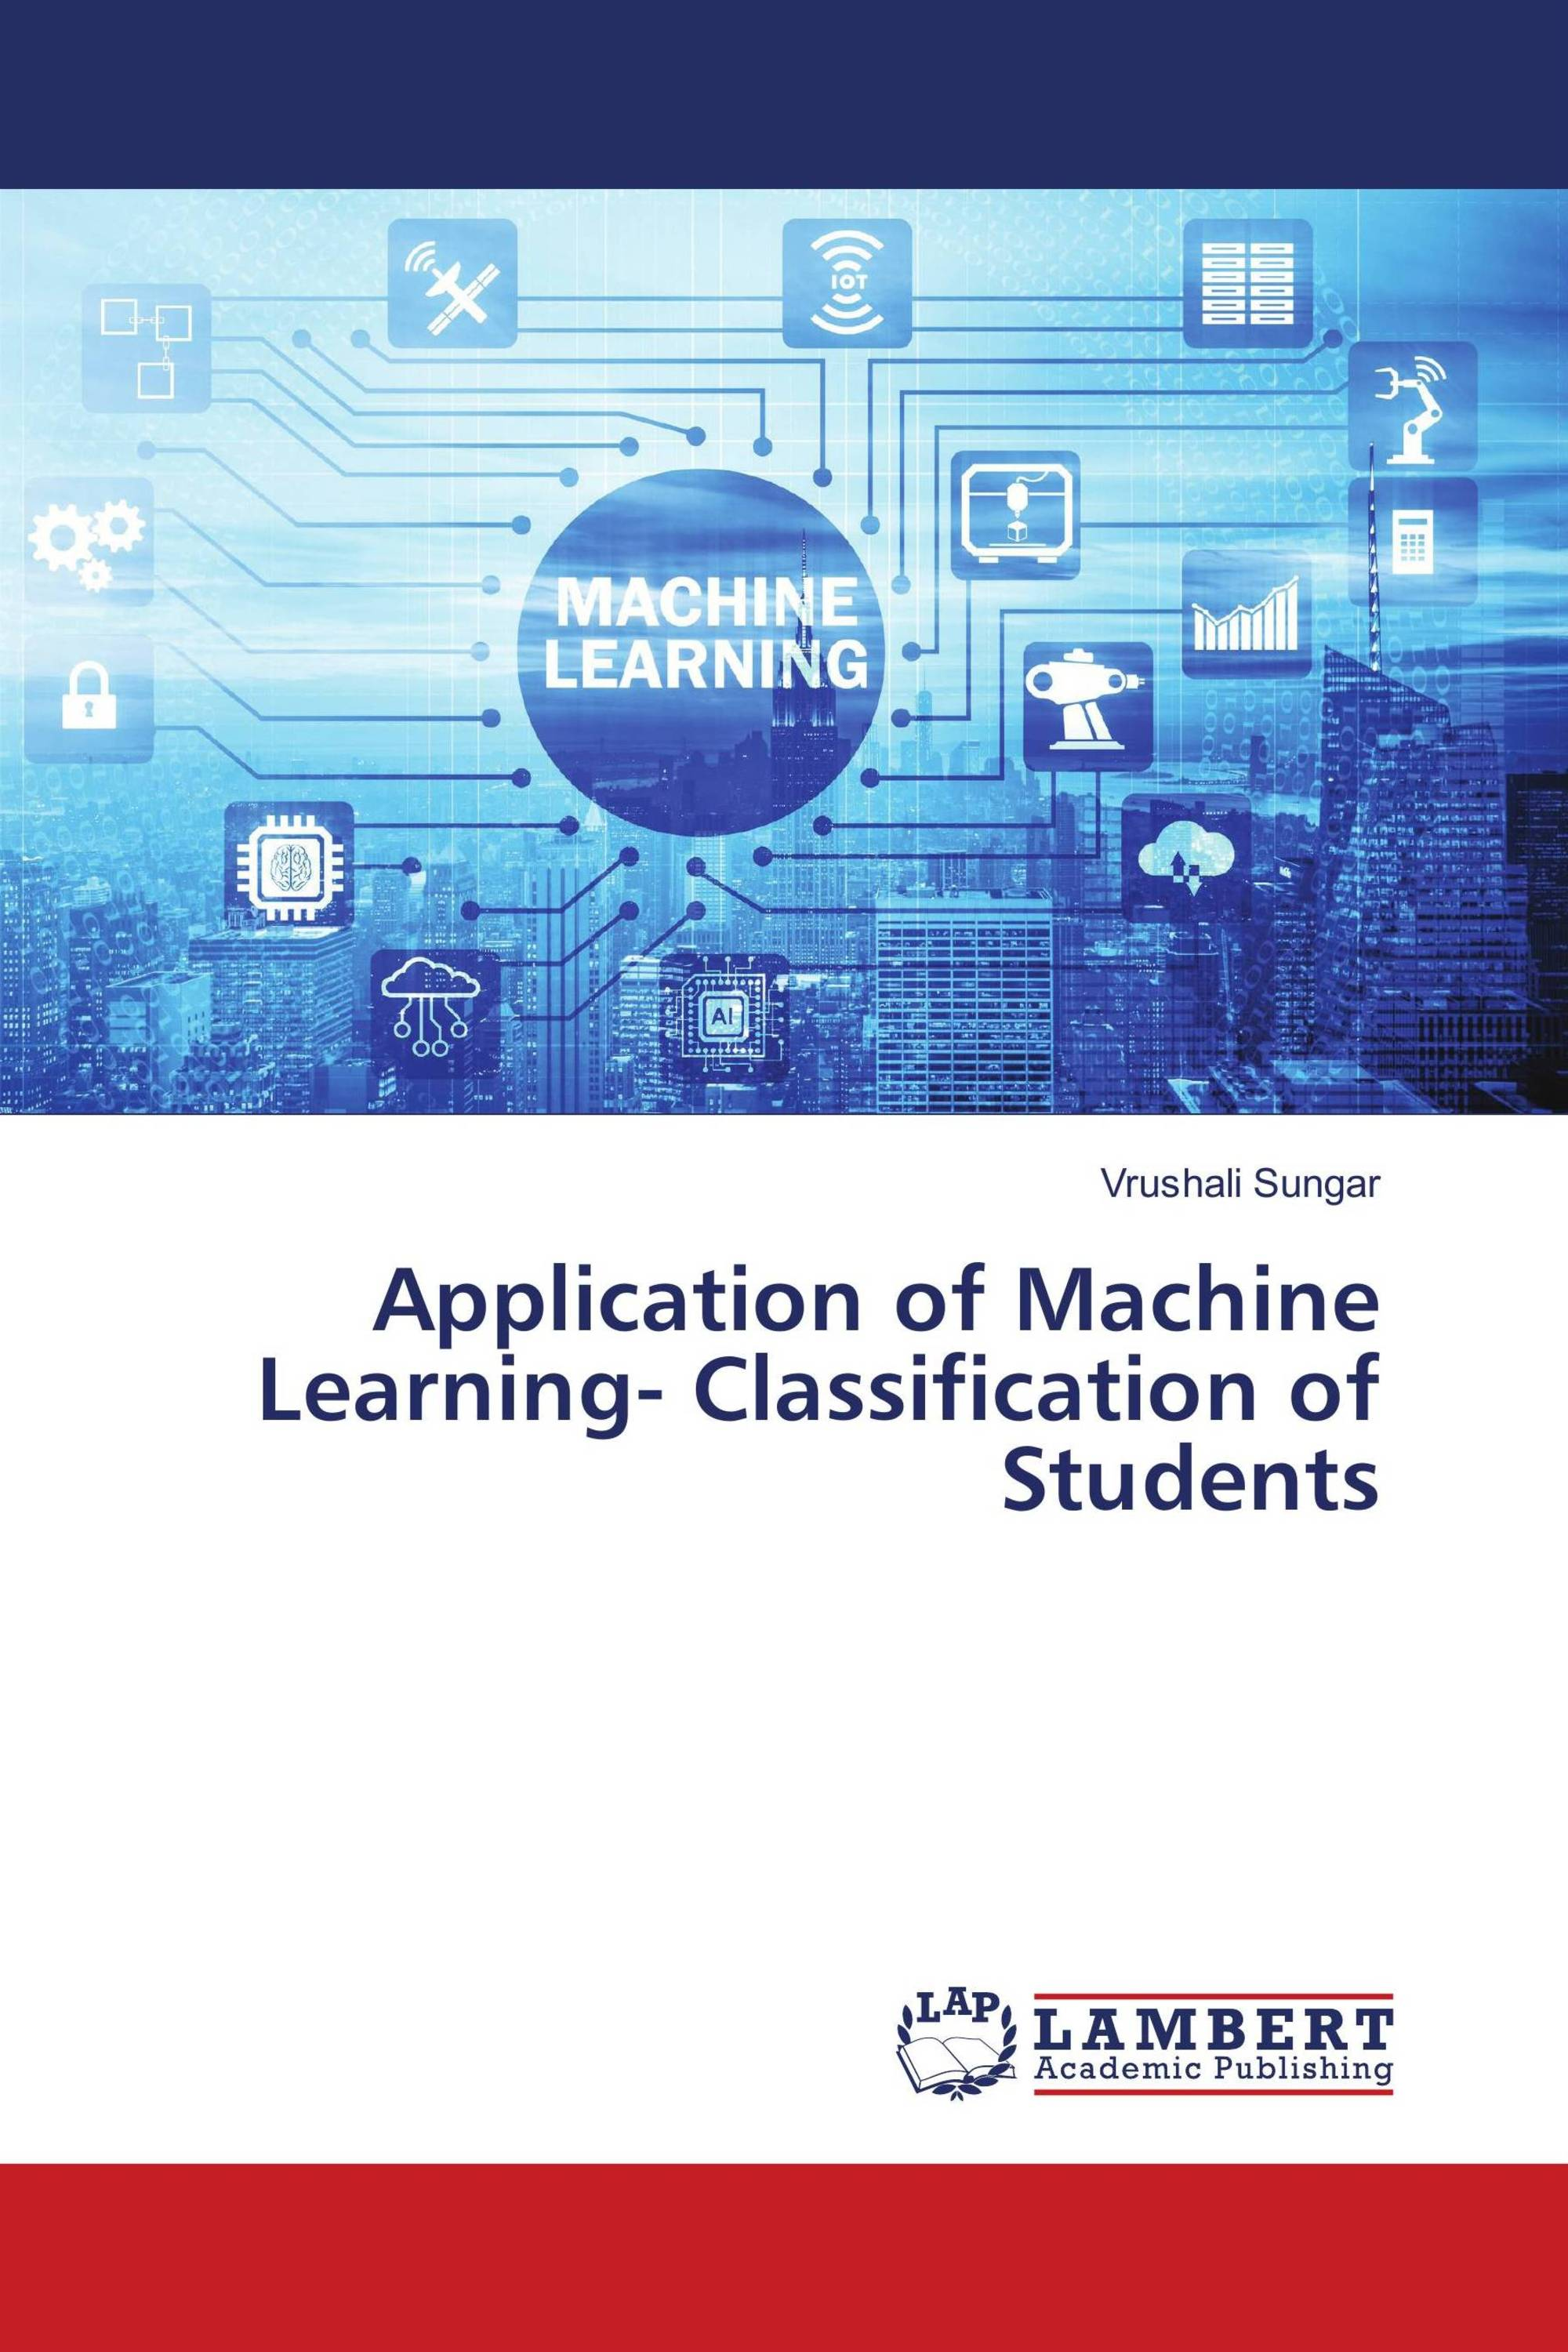 Application of Machine Learning- Classification of Students